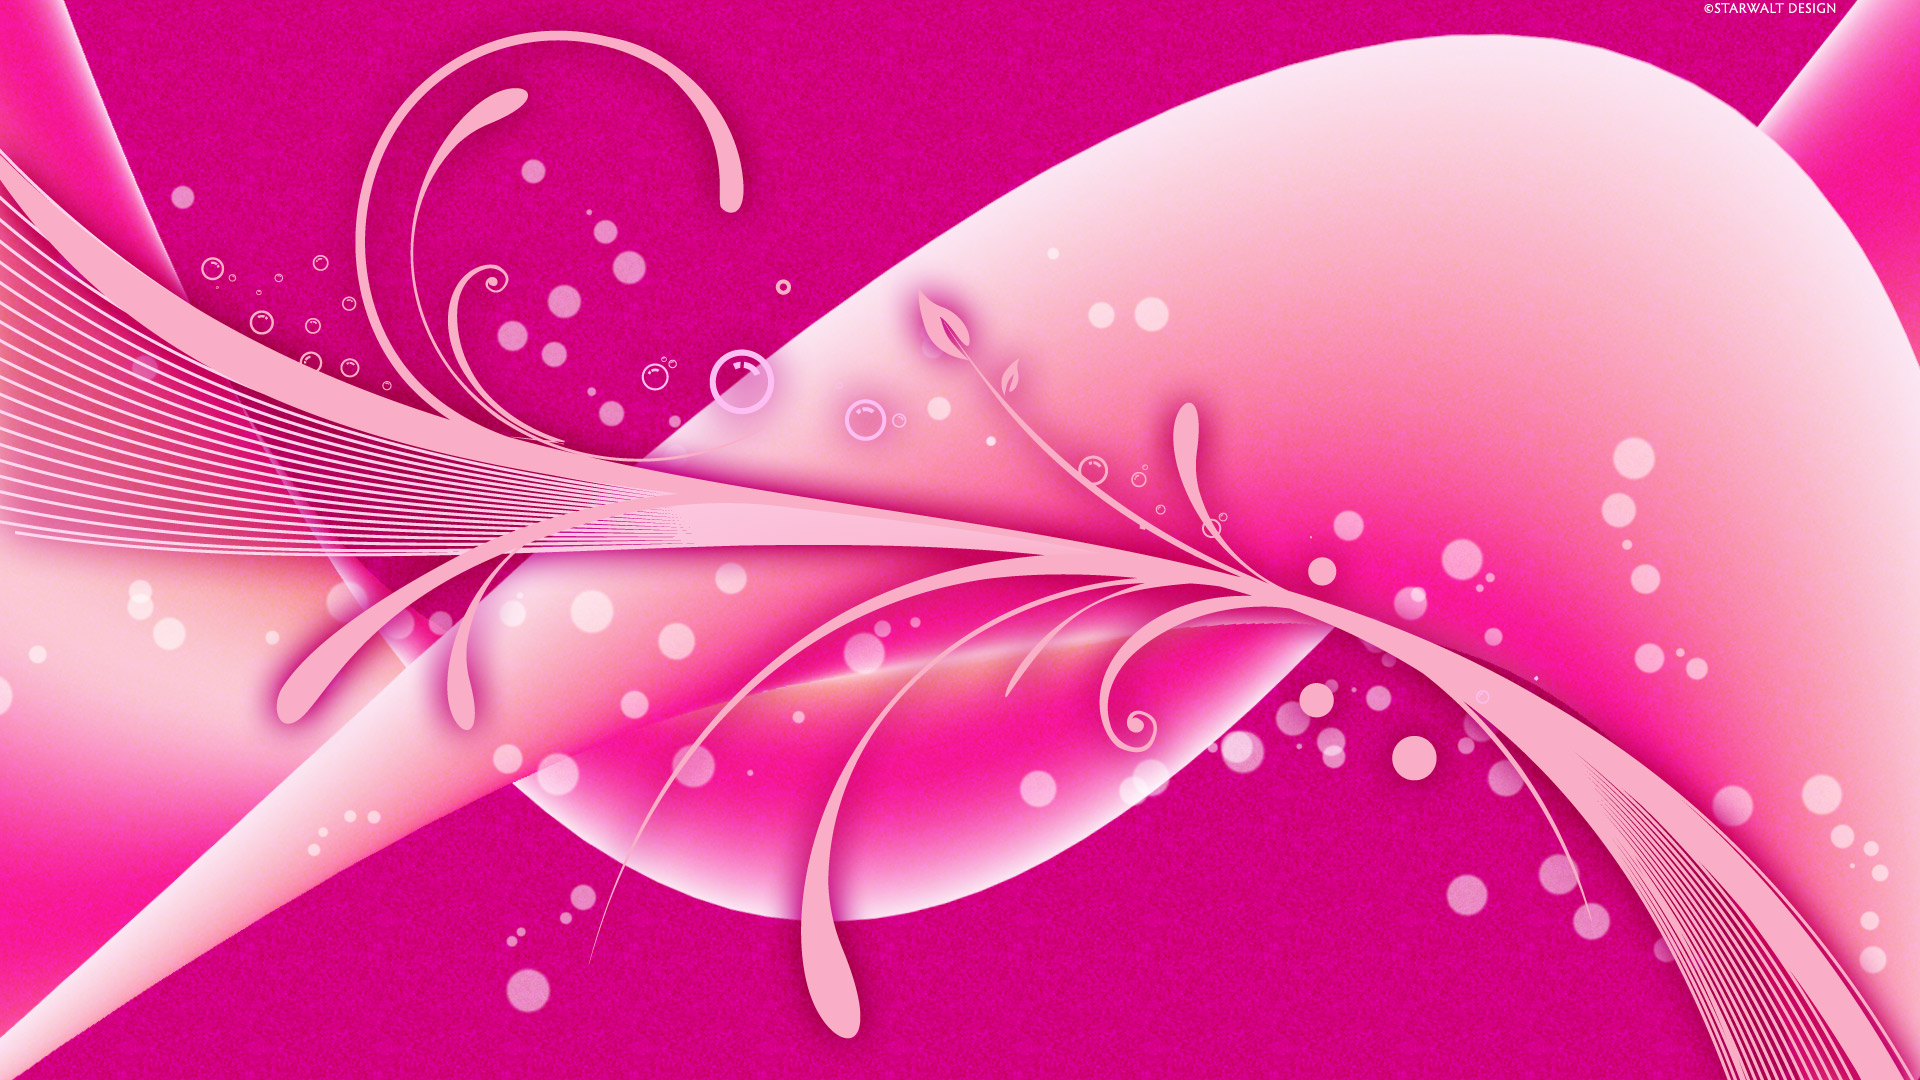 Wallpaper Design Pink